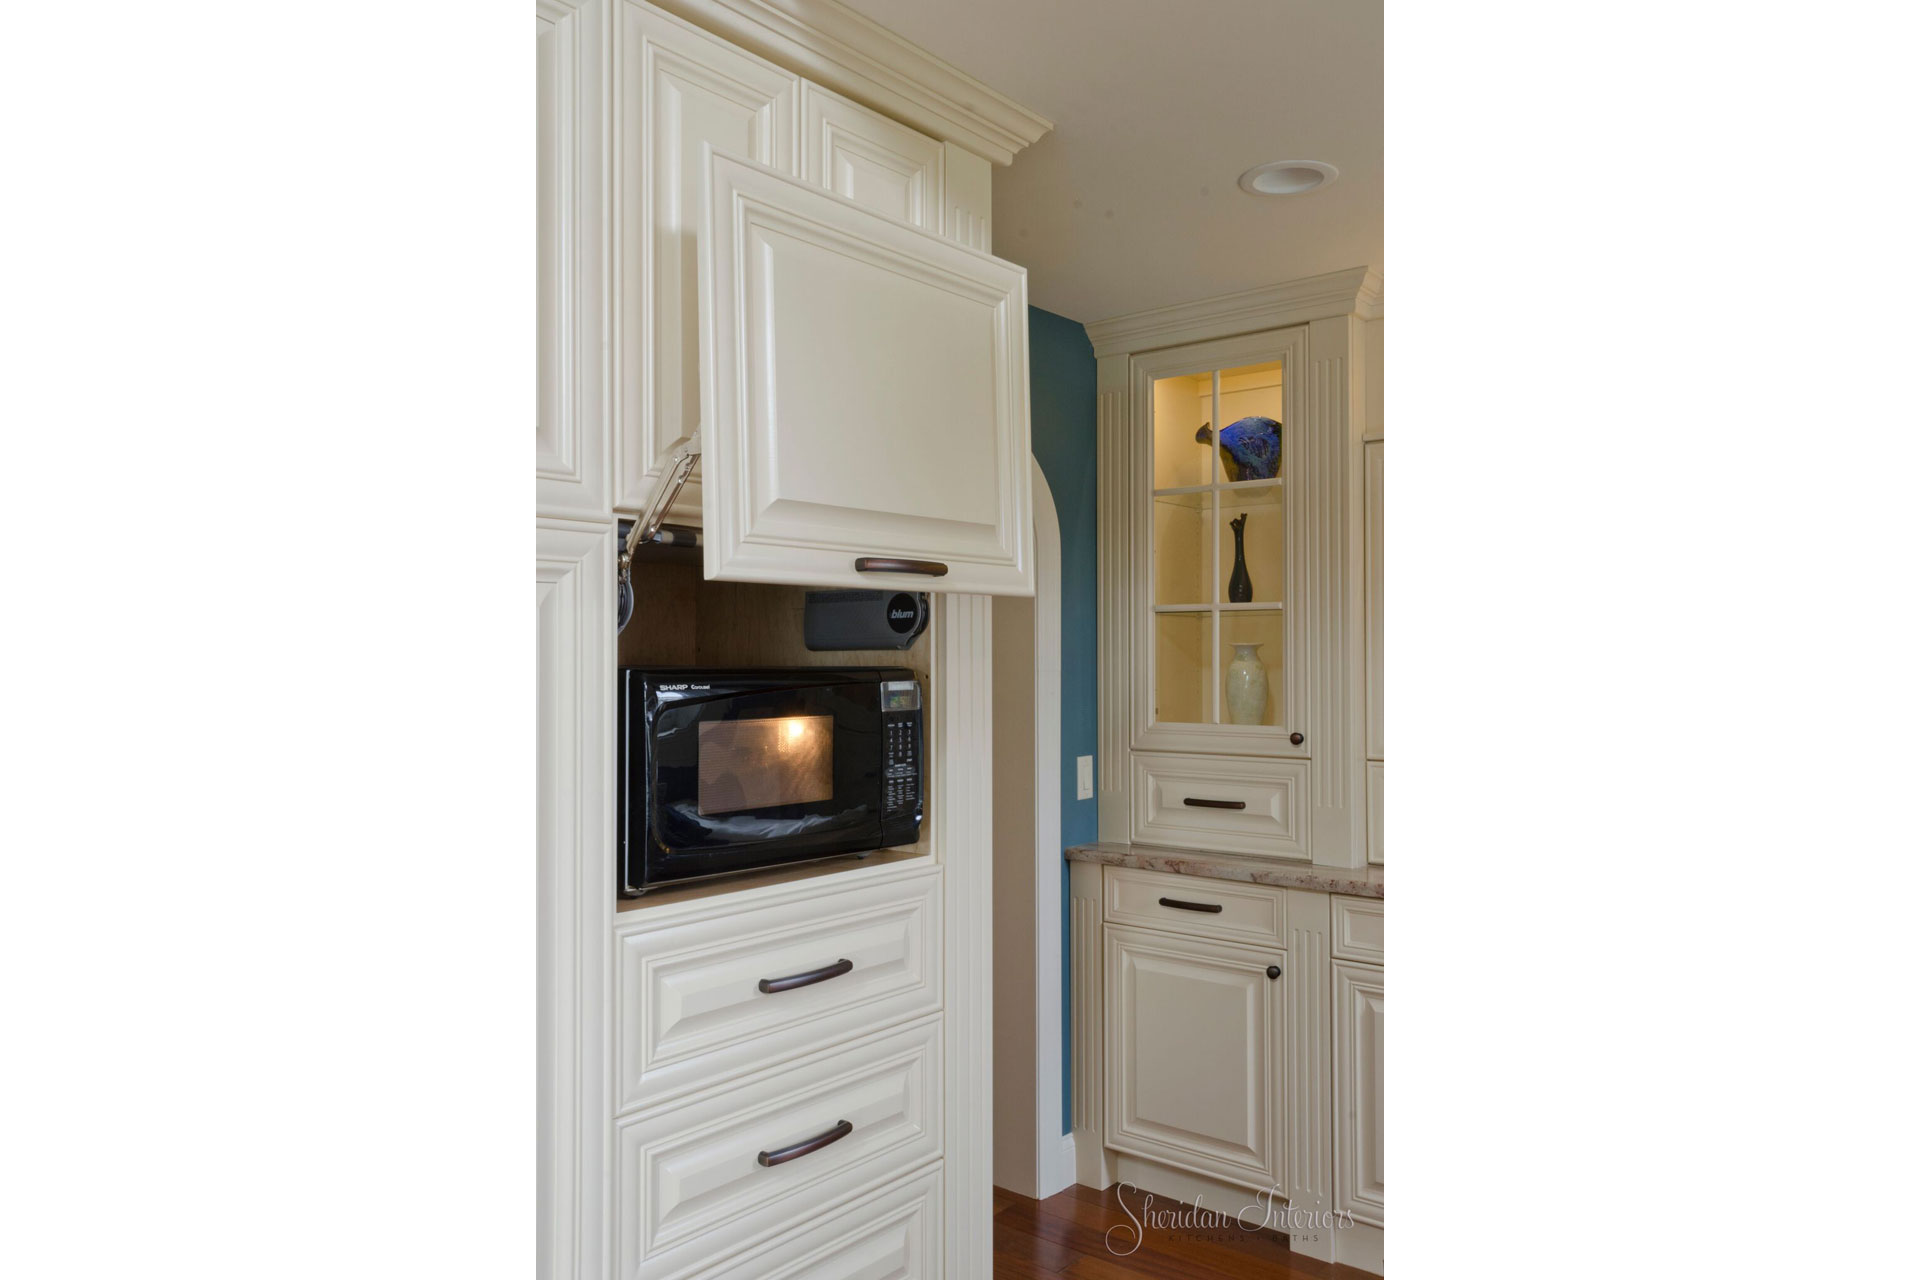 traditional kitchen, white kitchen, microwave behind lift up door, Butler's Pantry - Sheridan Interiors, sheridan interiors kitchens and baths, kitchen designer cornwall, kitchen designer ottawa